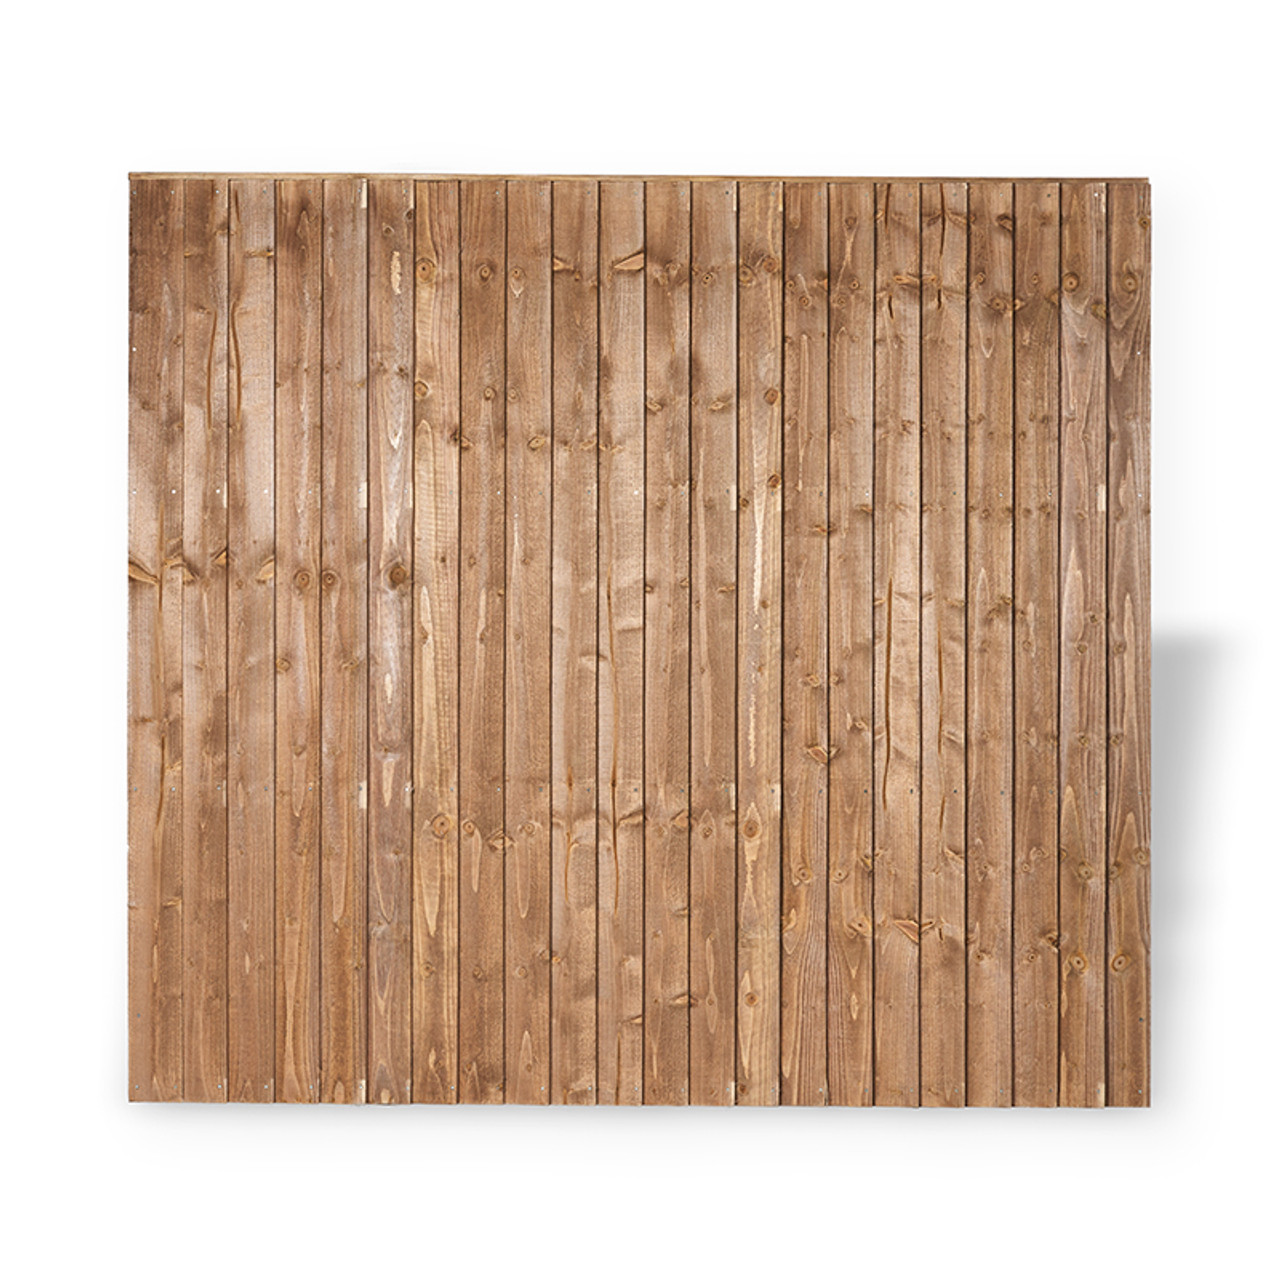 6ft x 6ft Featheredge Closeboard Fence Panel Pack of 5